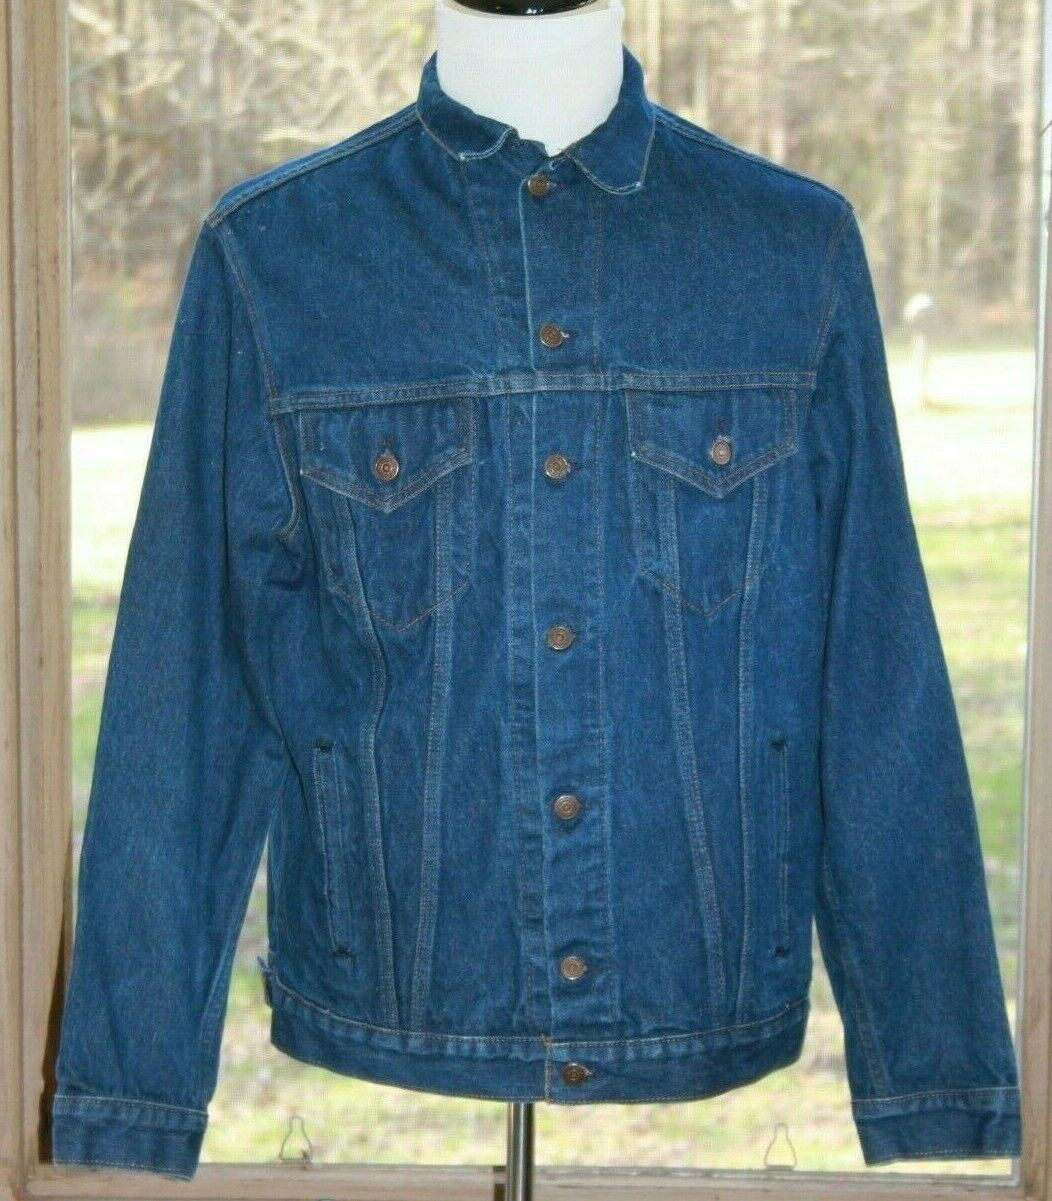 Primary image for Gap Size Large Long Denim Trucker Jacket Blue Jean Dark Rinse Made in USA (AM)